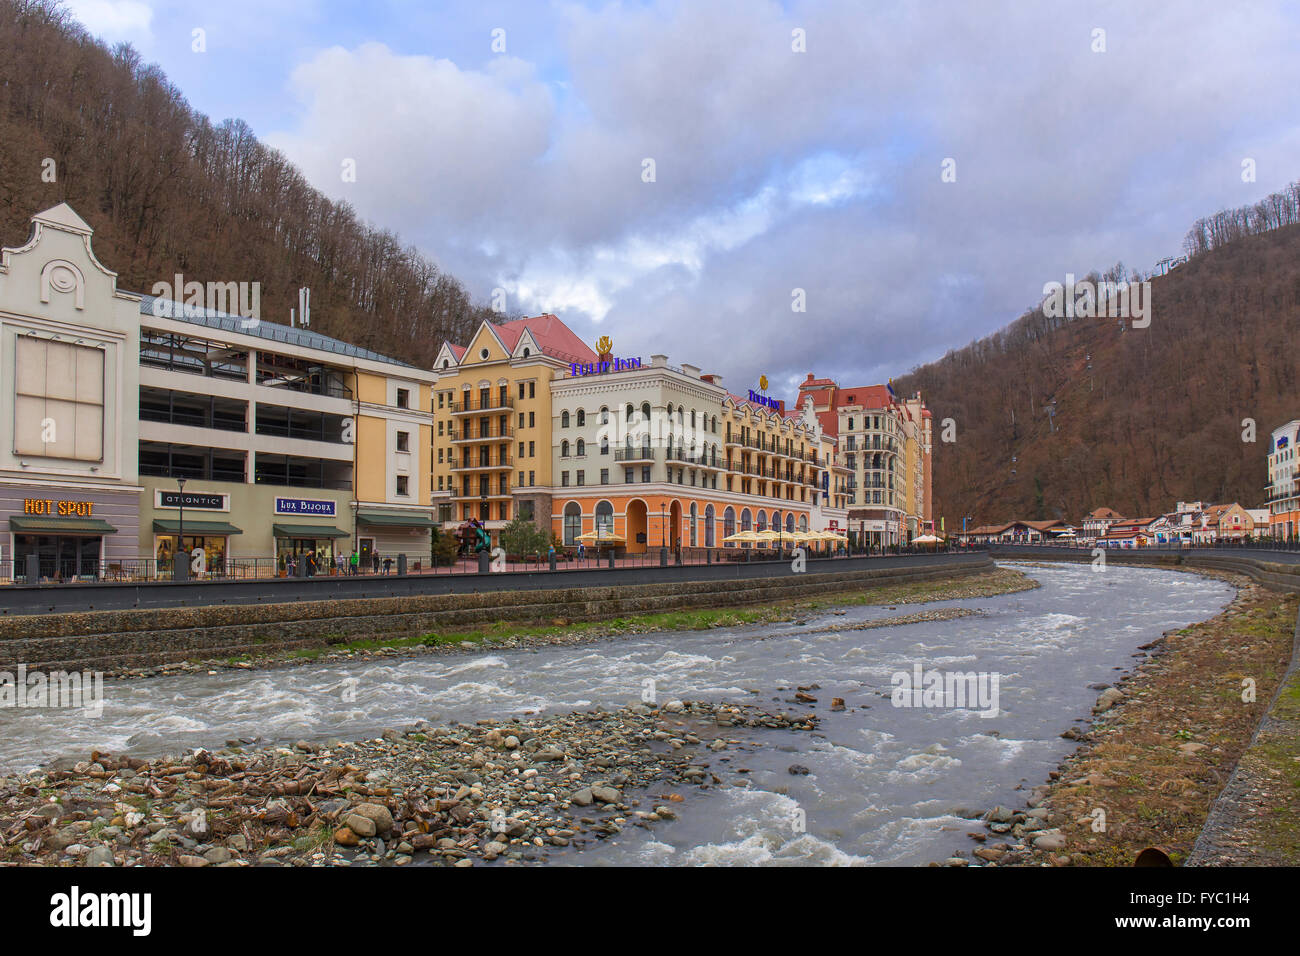 ROSA KHUTOR, RUSSIA - MARCH 27, 2016: Msrch view on ski resort of world class Rosa Khutor built in 2013 for the - Stock Image